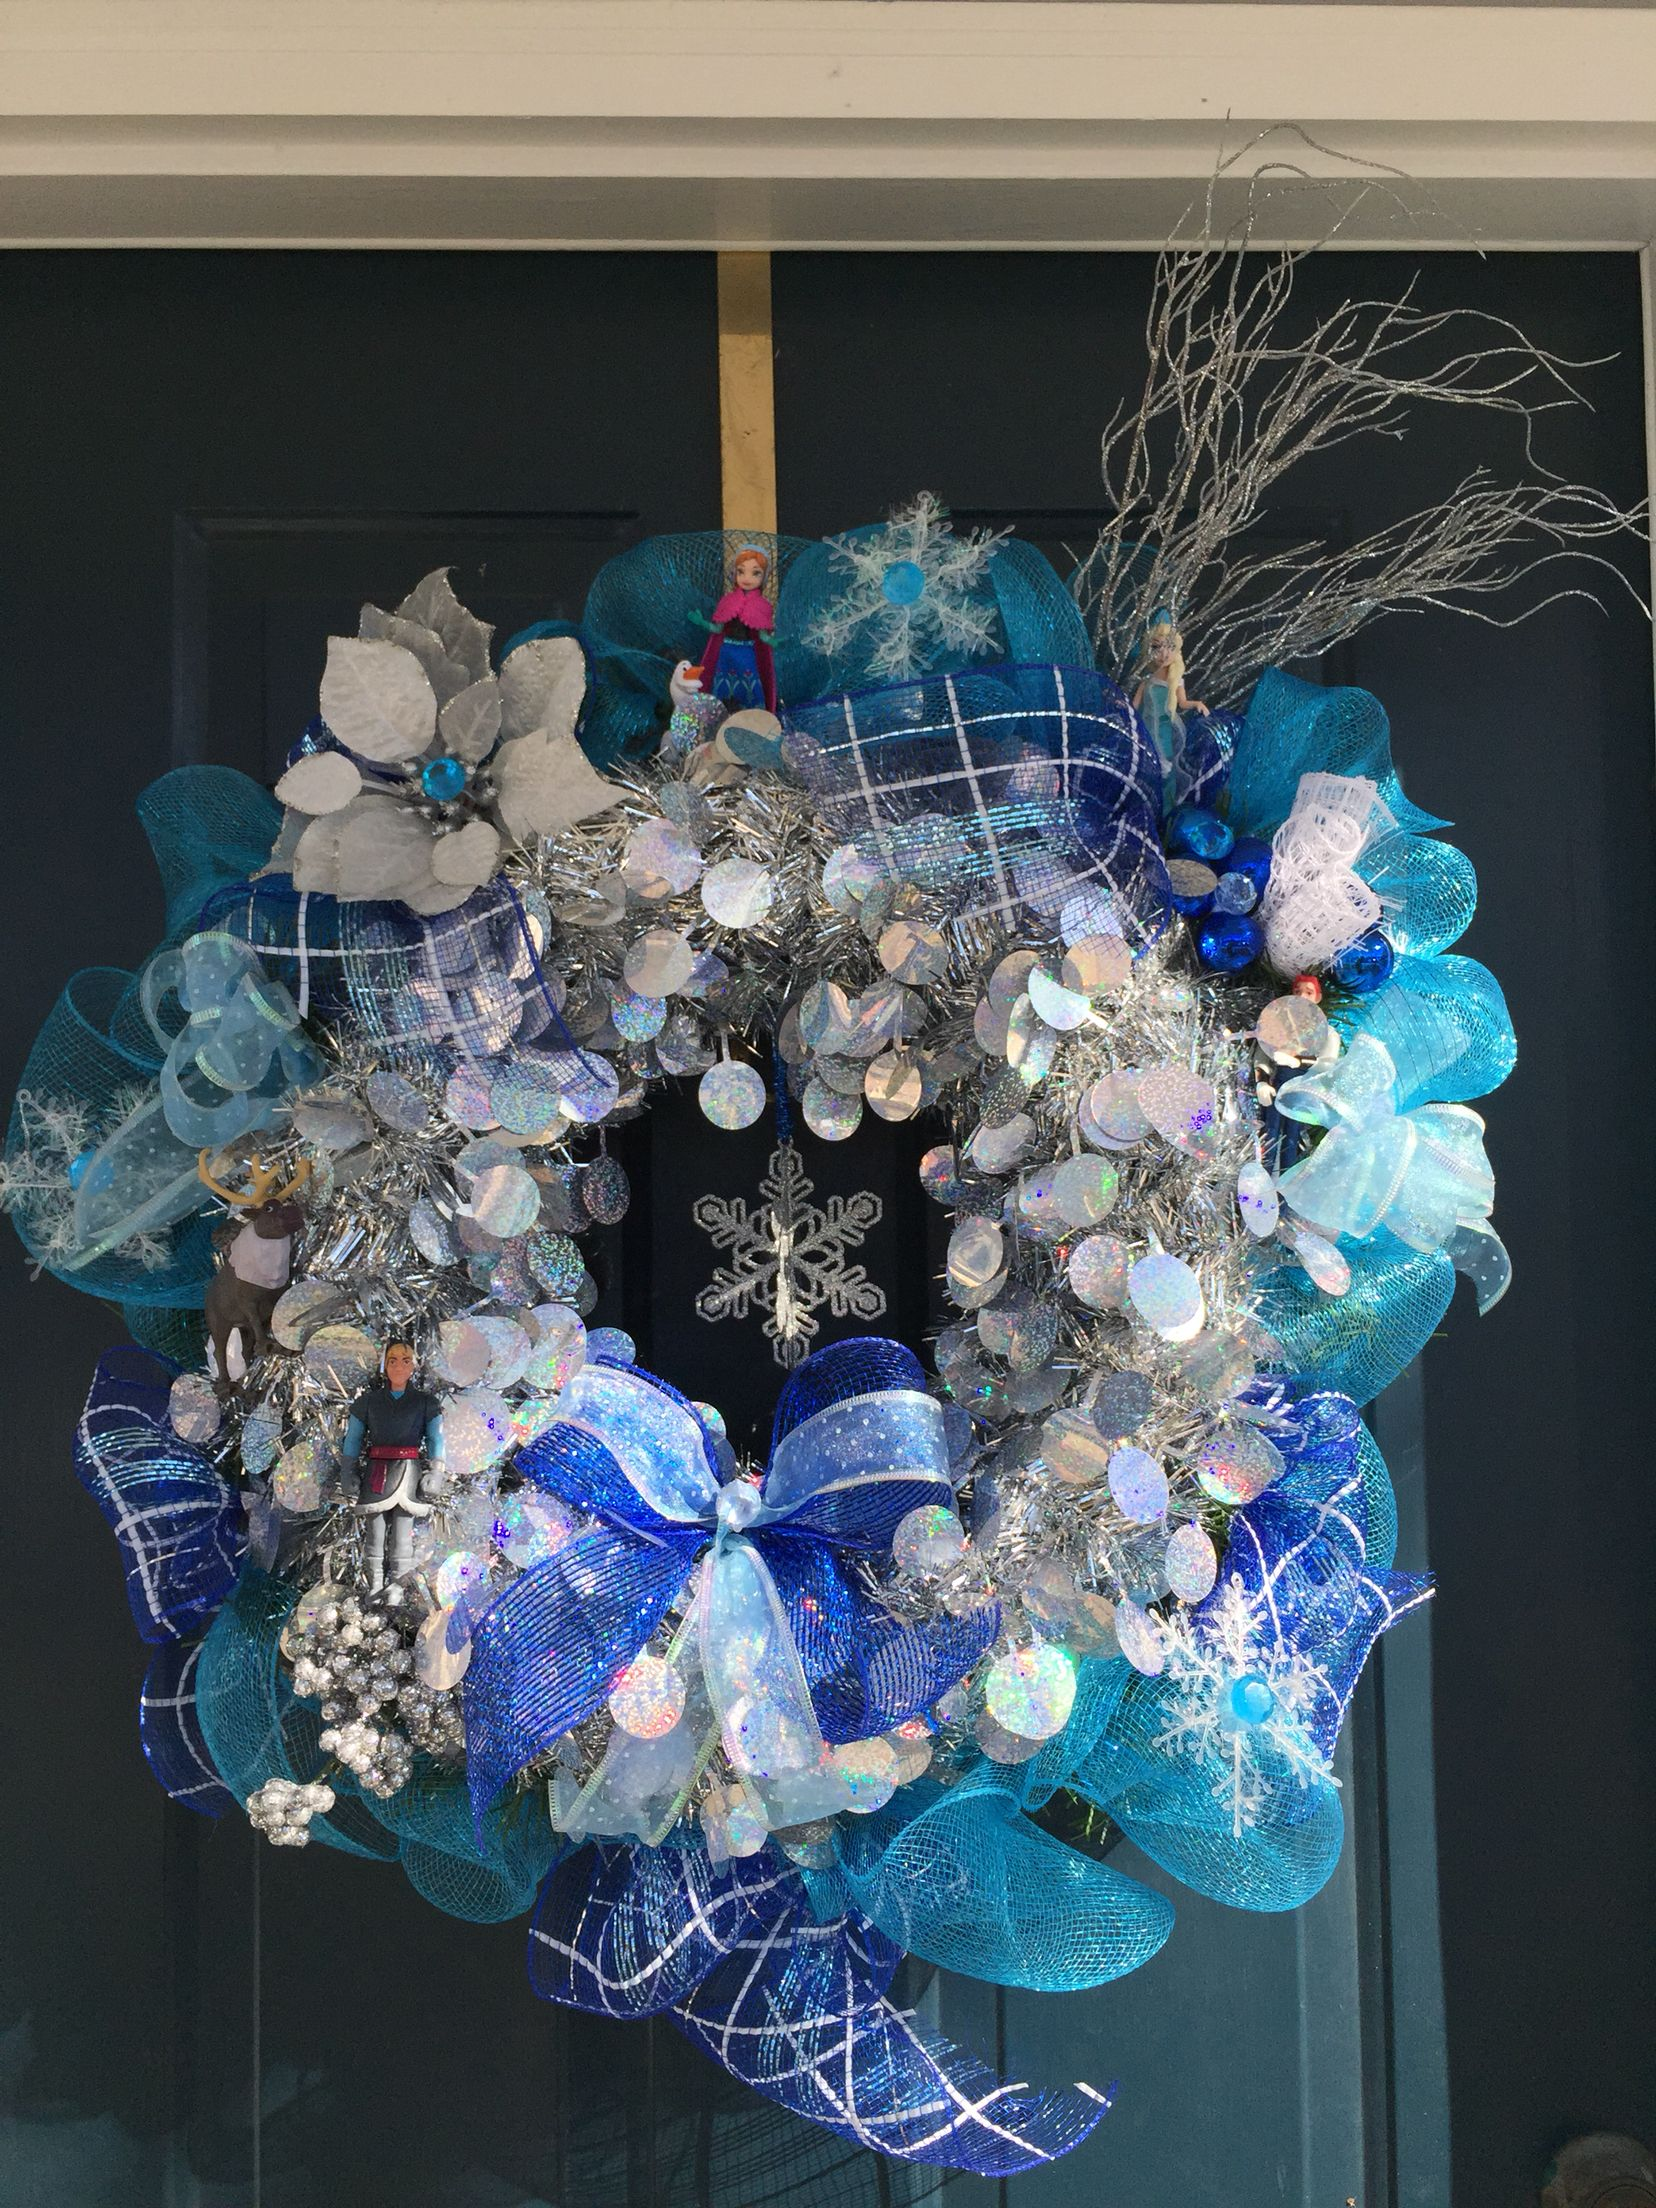 Frozen themed wreath. Cute winter idea!